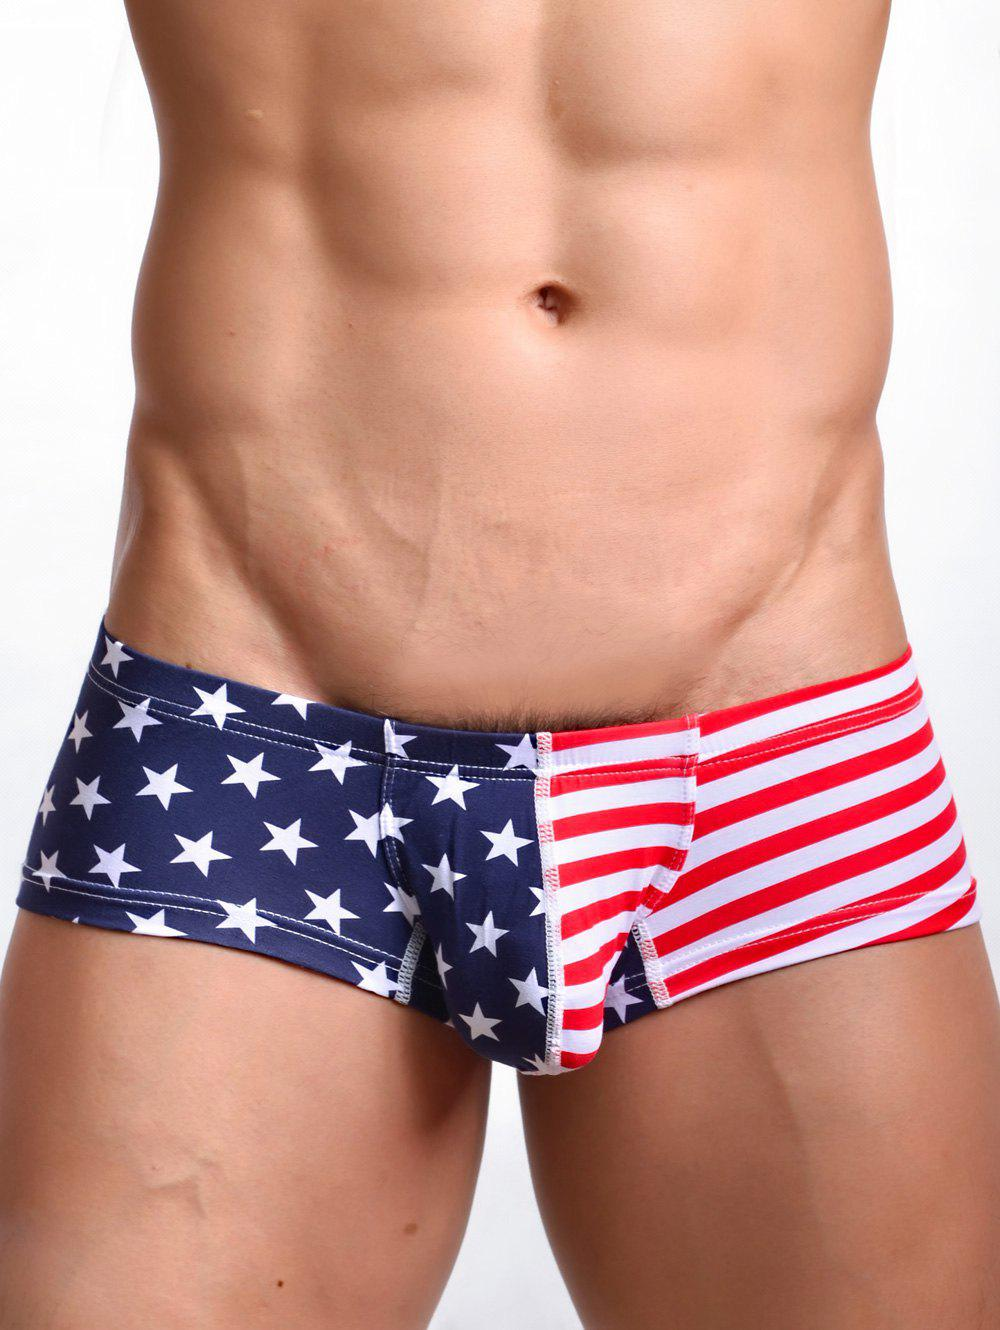 U Pouch Design Striped and Star Print Men's Trunk